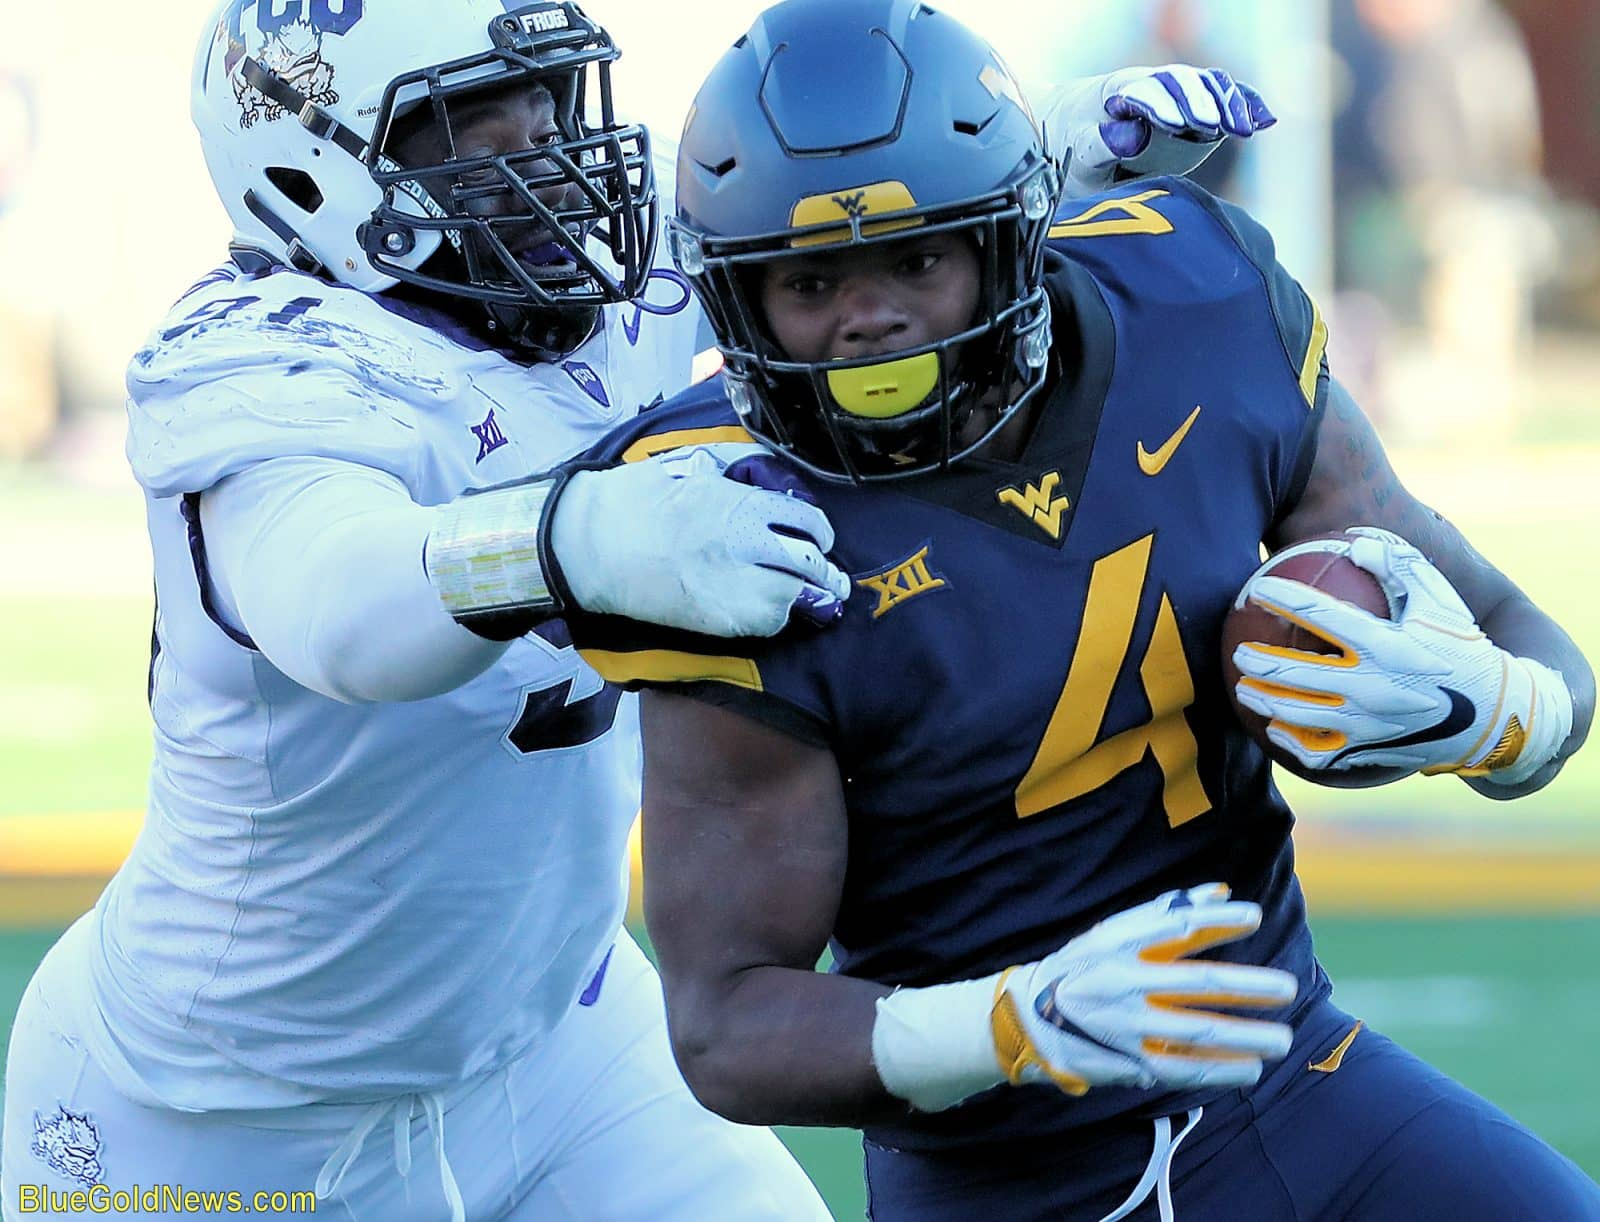 Wvu S Projected Football Depth Chart Running Backs Wvu West Virginia Mountaineers Sports Coverage Blue Gold News